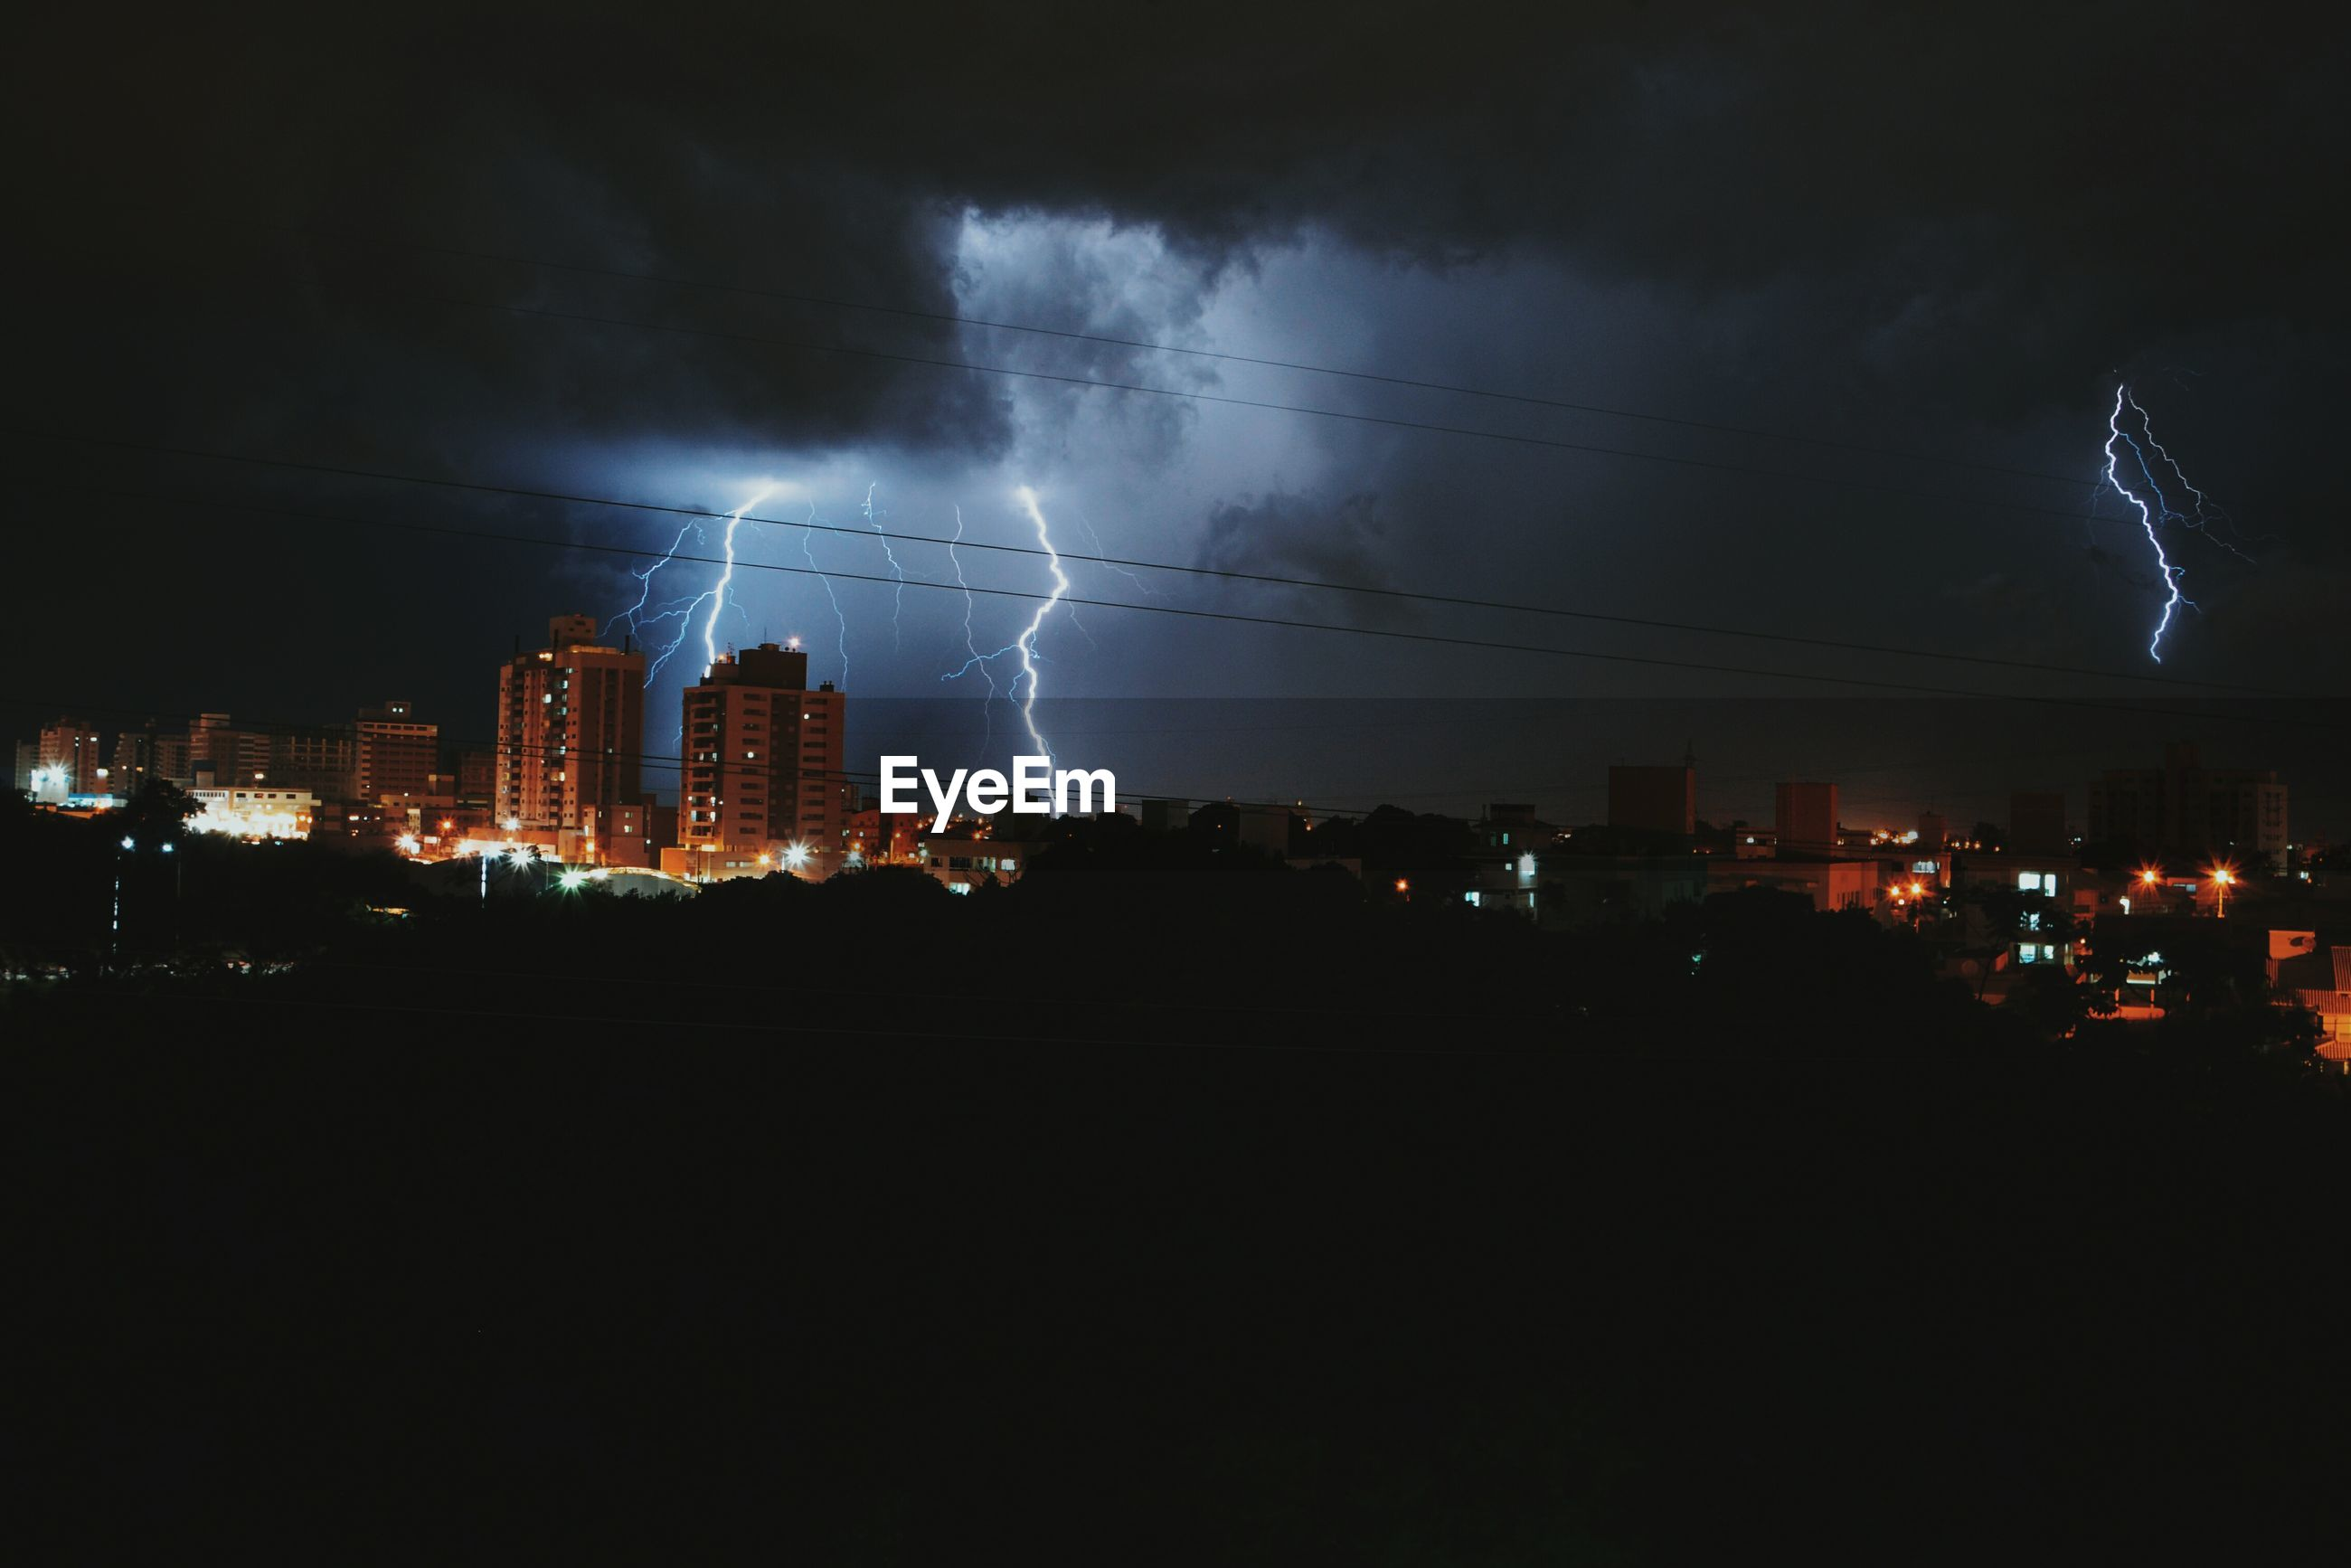 PANORAMIC VIEW OF ILLUMINATED CITY AGAINST STORM AT NIGHT